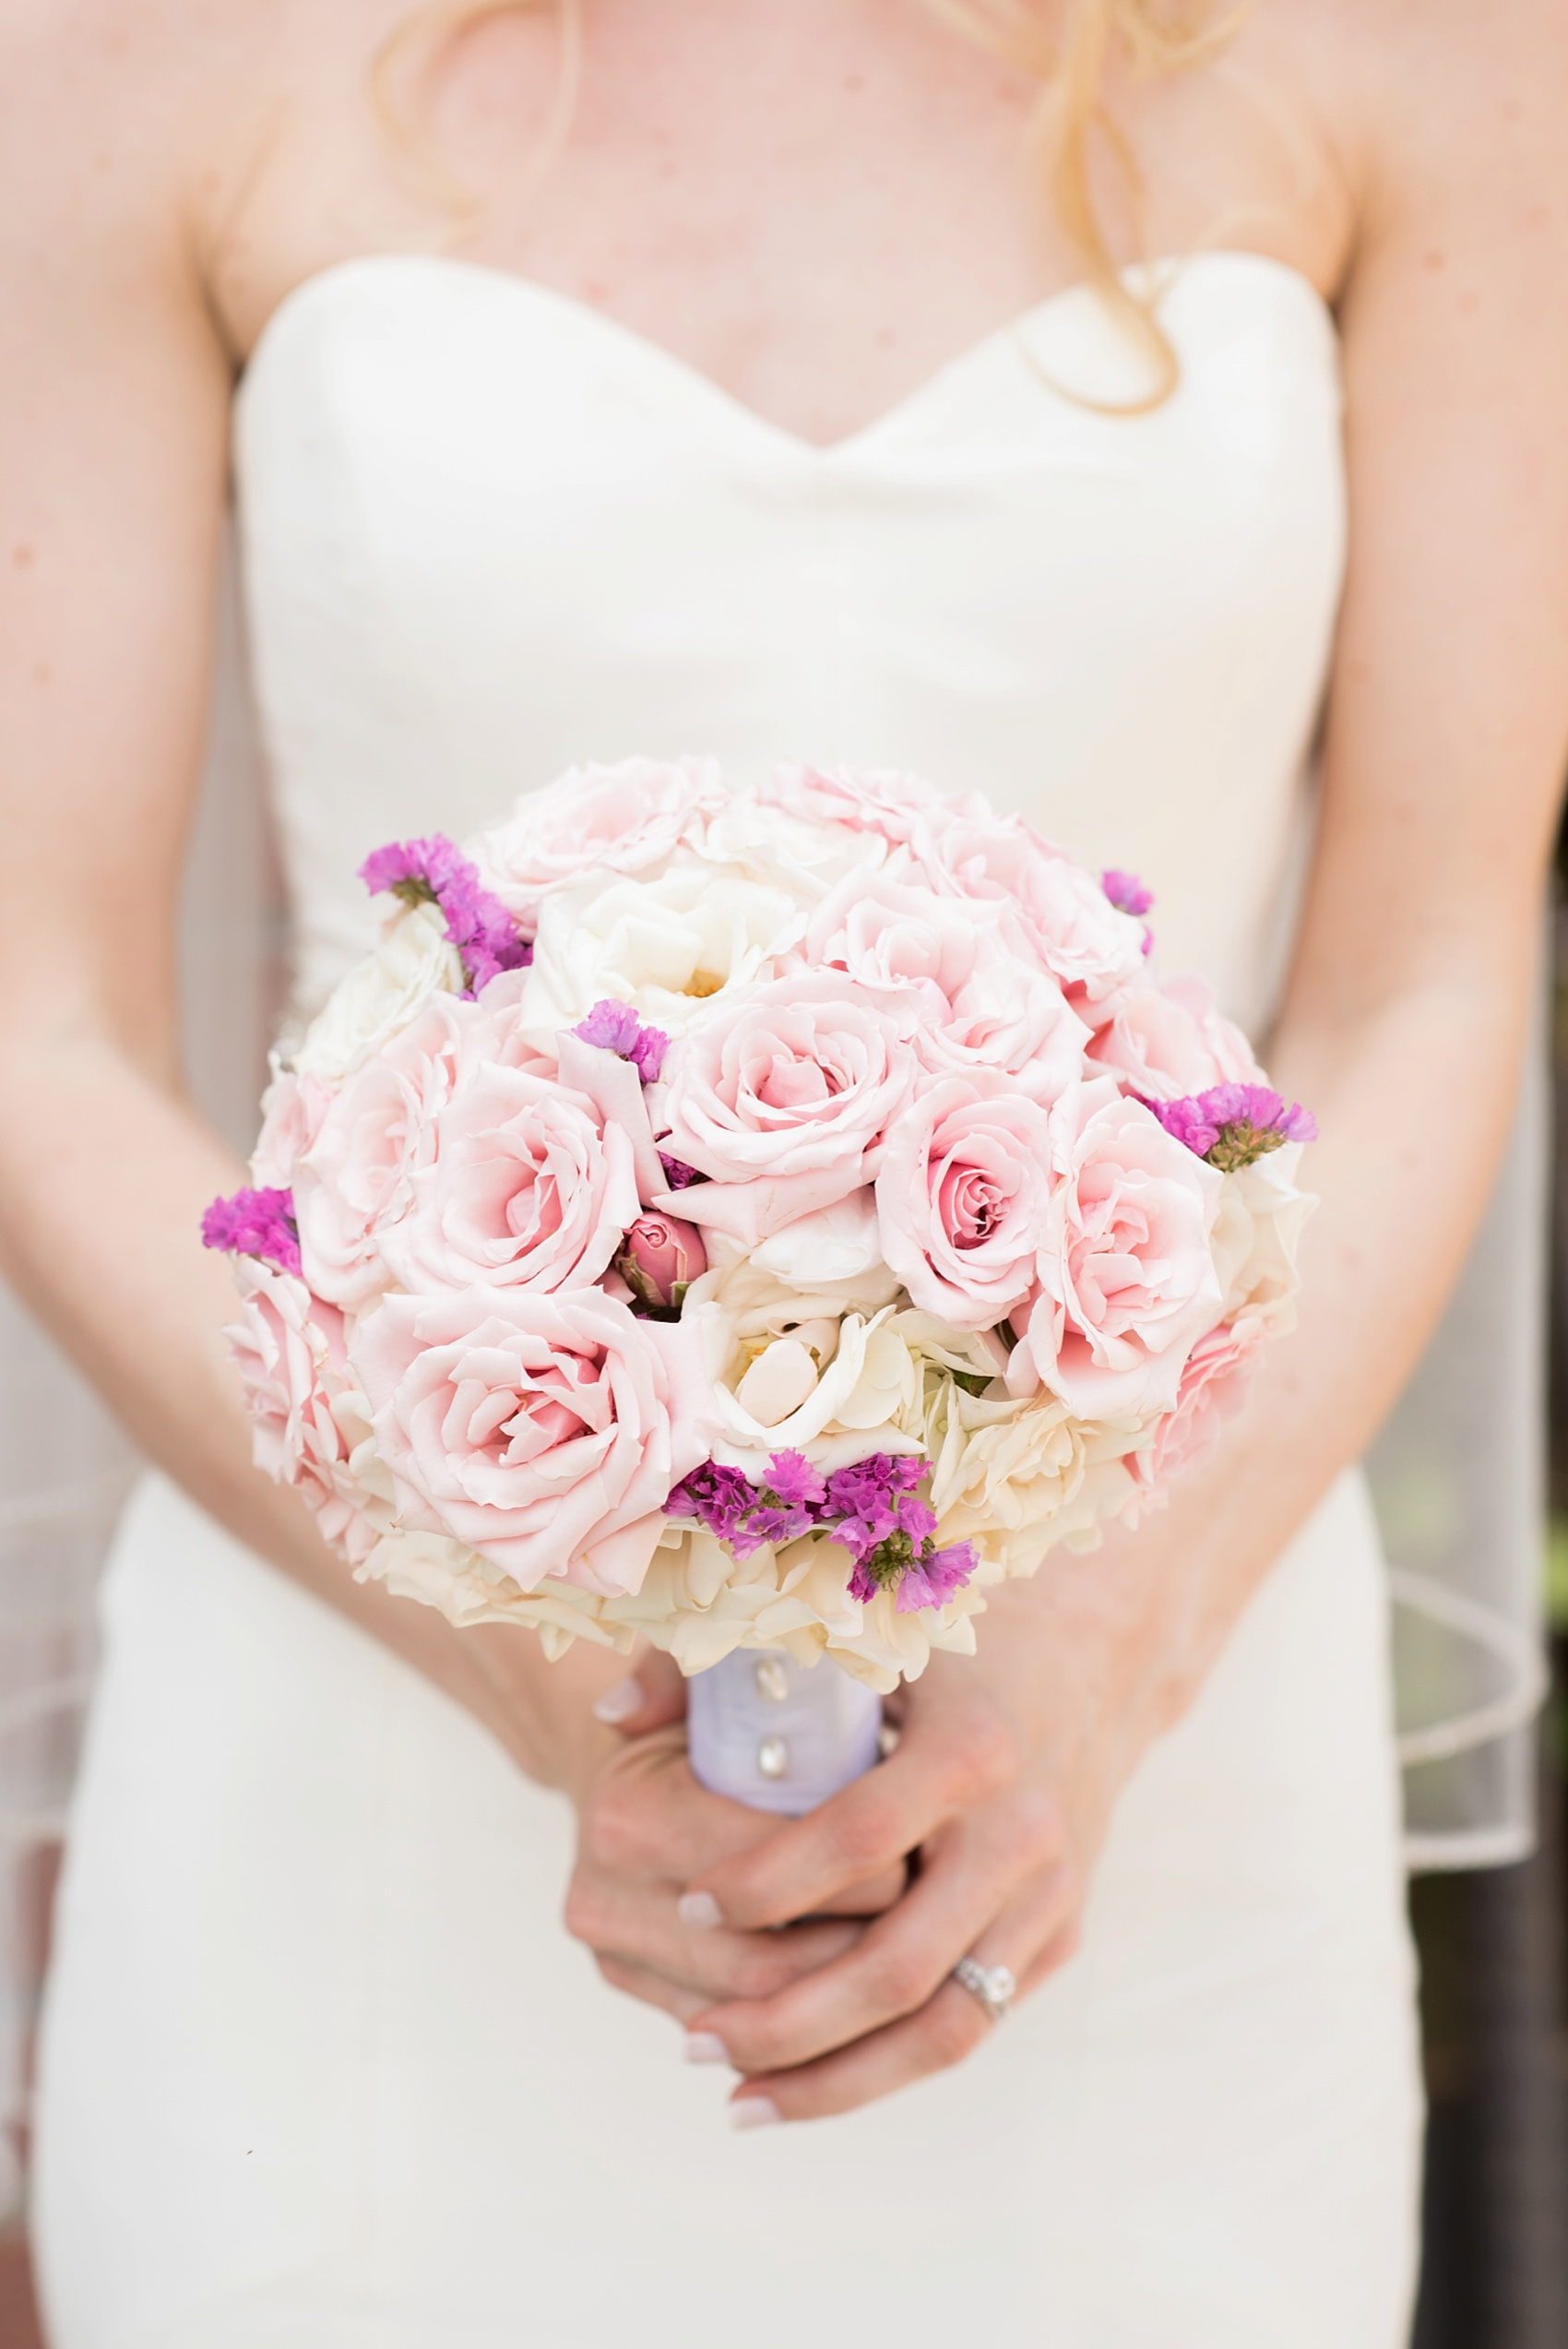 Pink rose bouquet for a My Moon Brooklyn, Williamsburg NYC, intimate wedding. Photos by Mikkel Paige Photography.